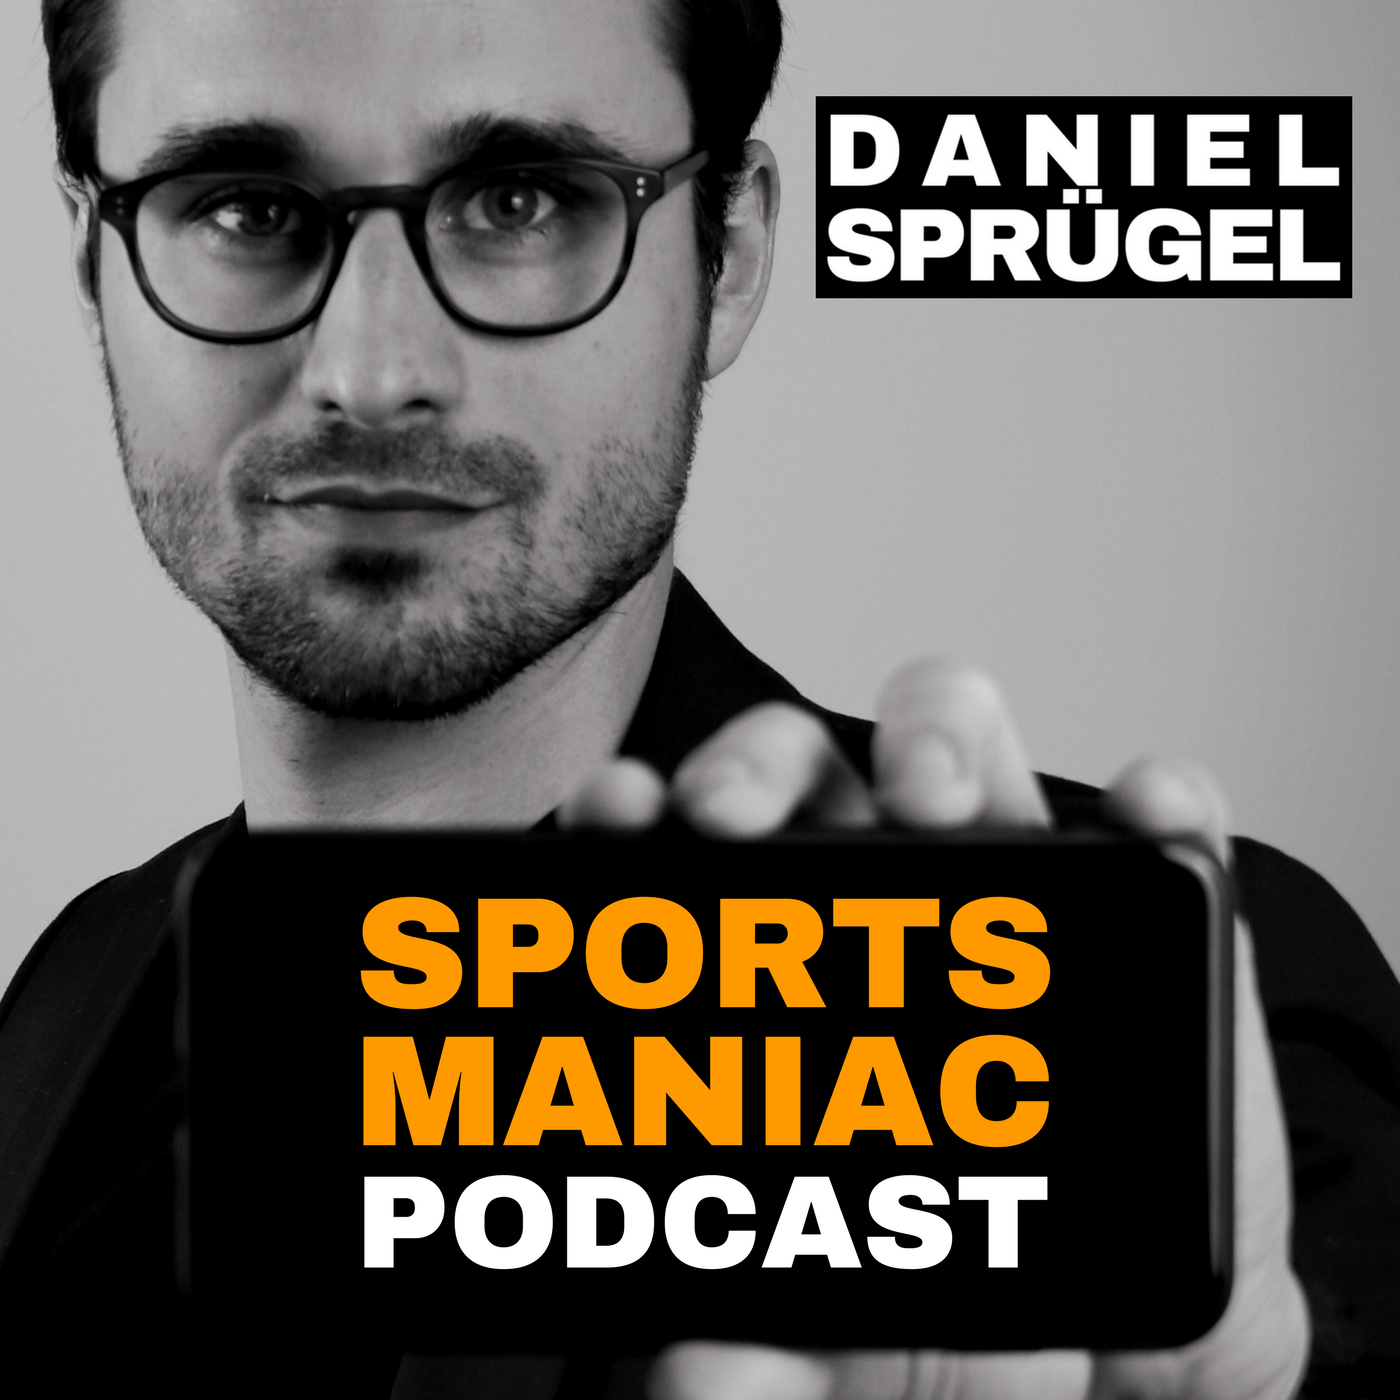 Sports Maniac - Digitale Trends und Innovationen im Sport